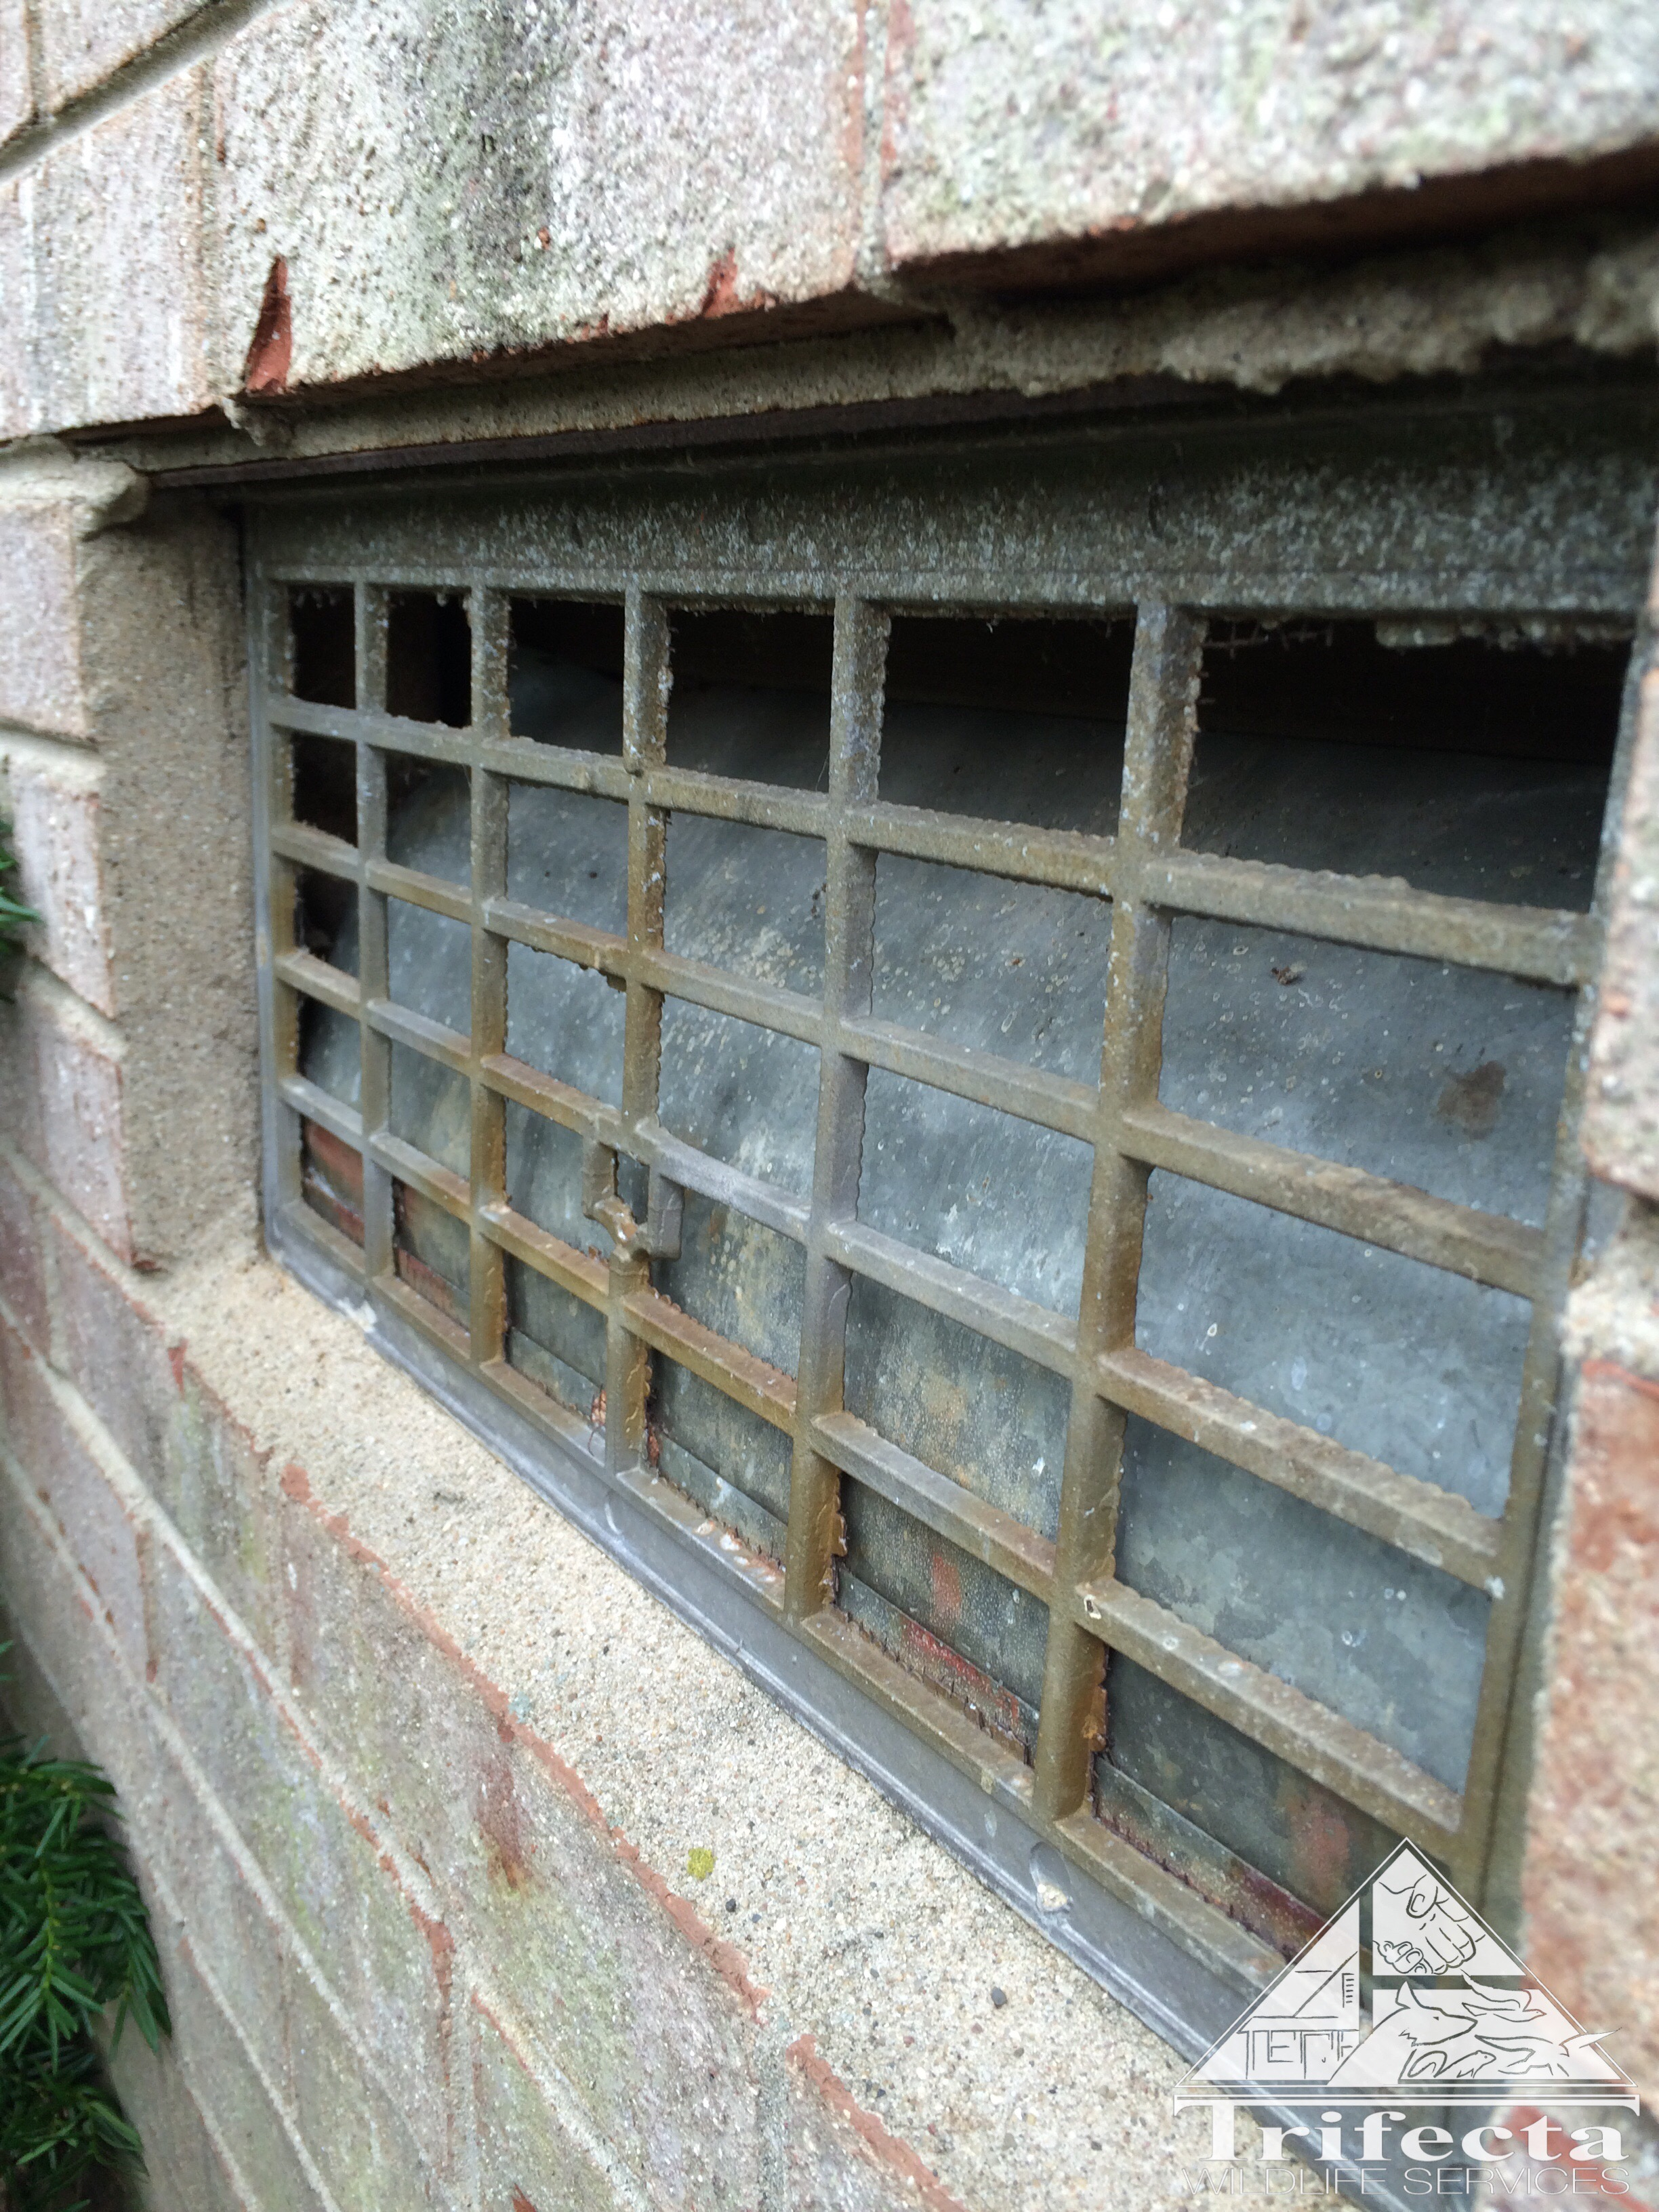 Mouse entry through unprotected foundation vent